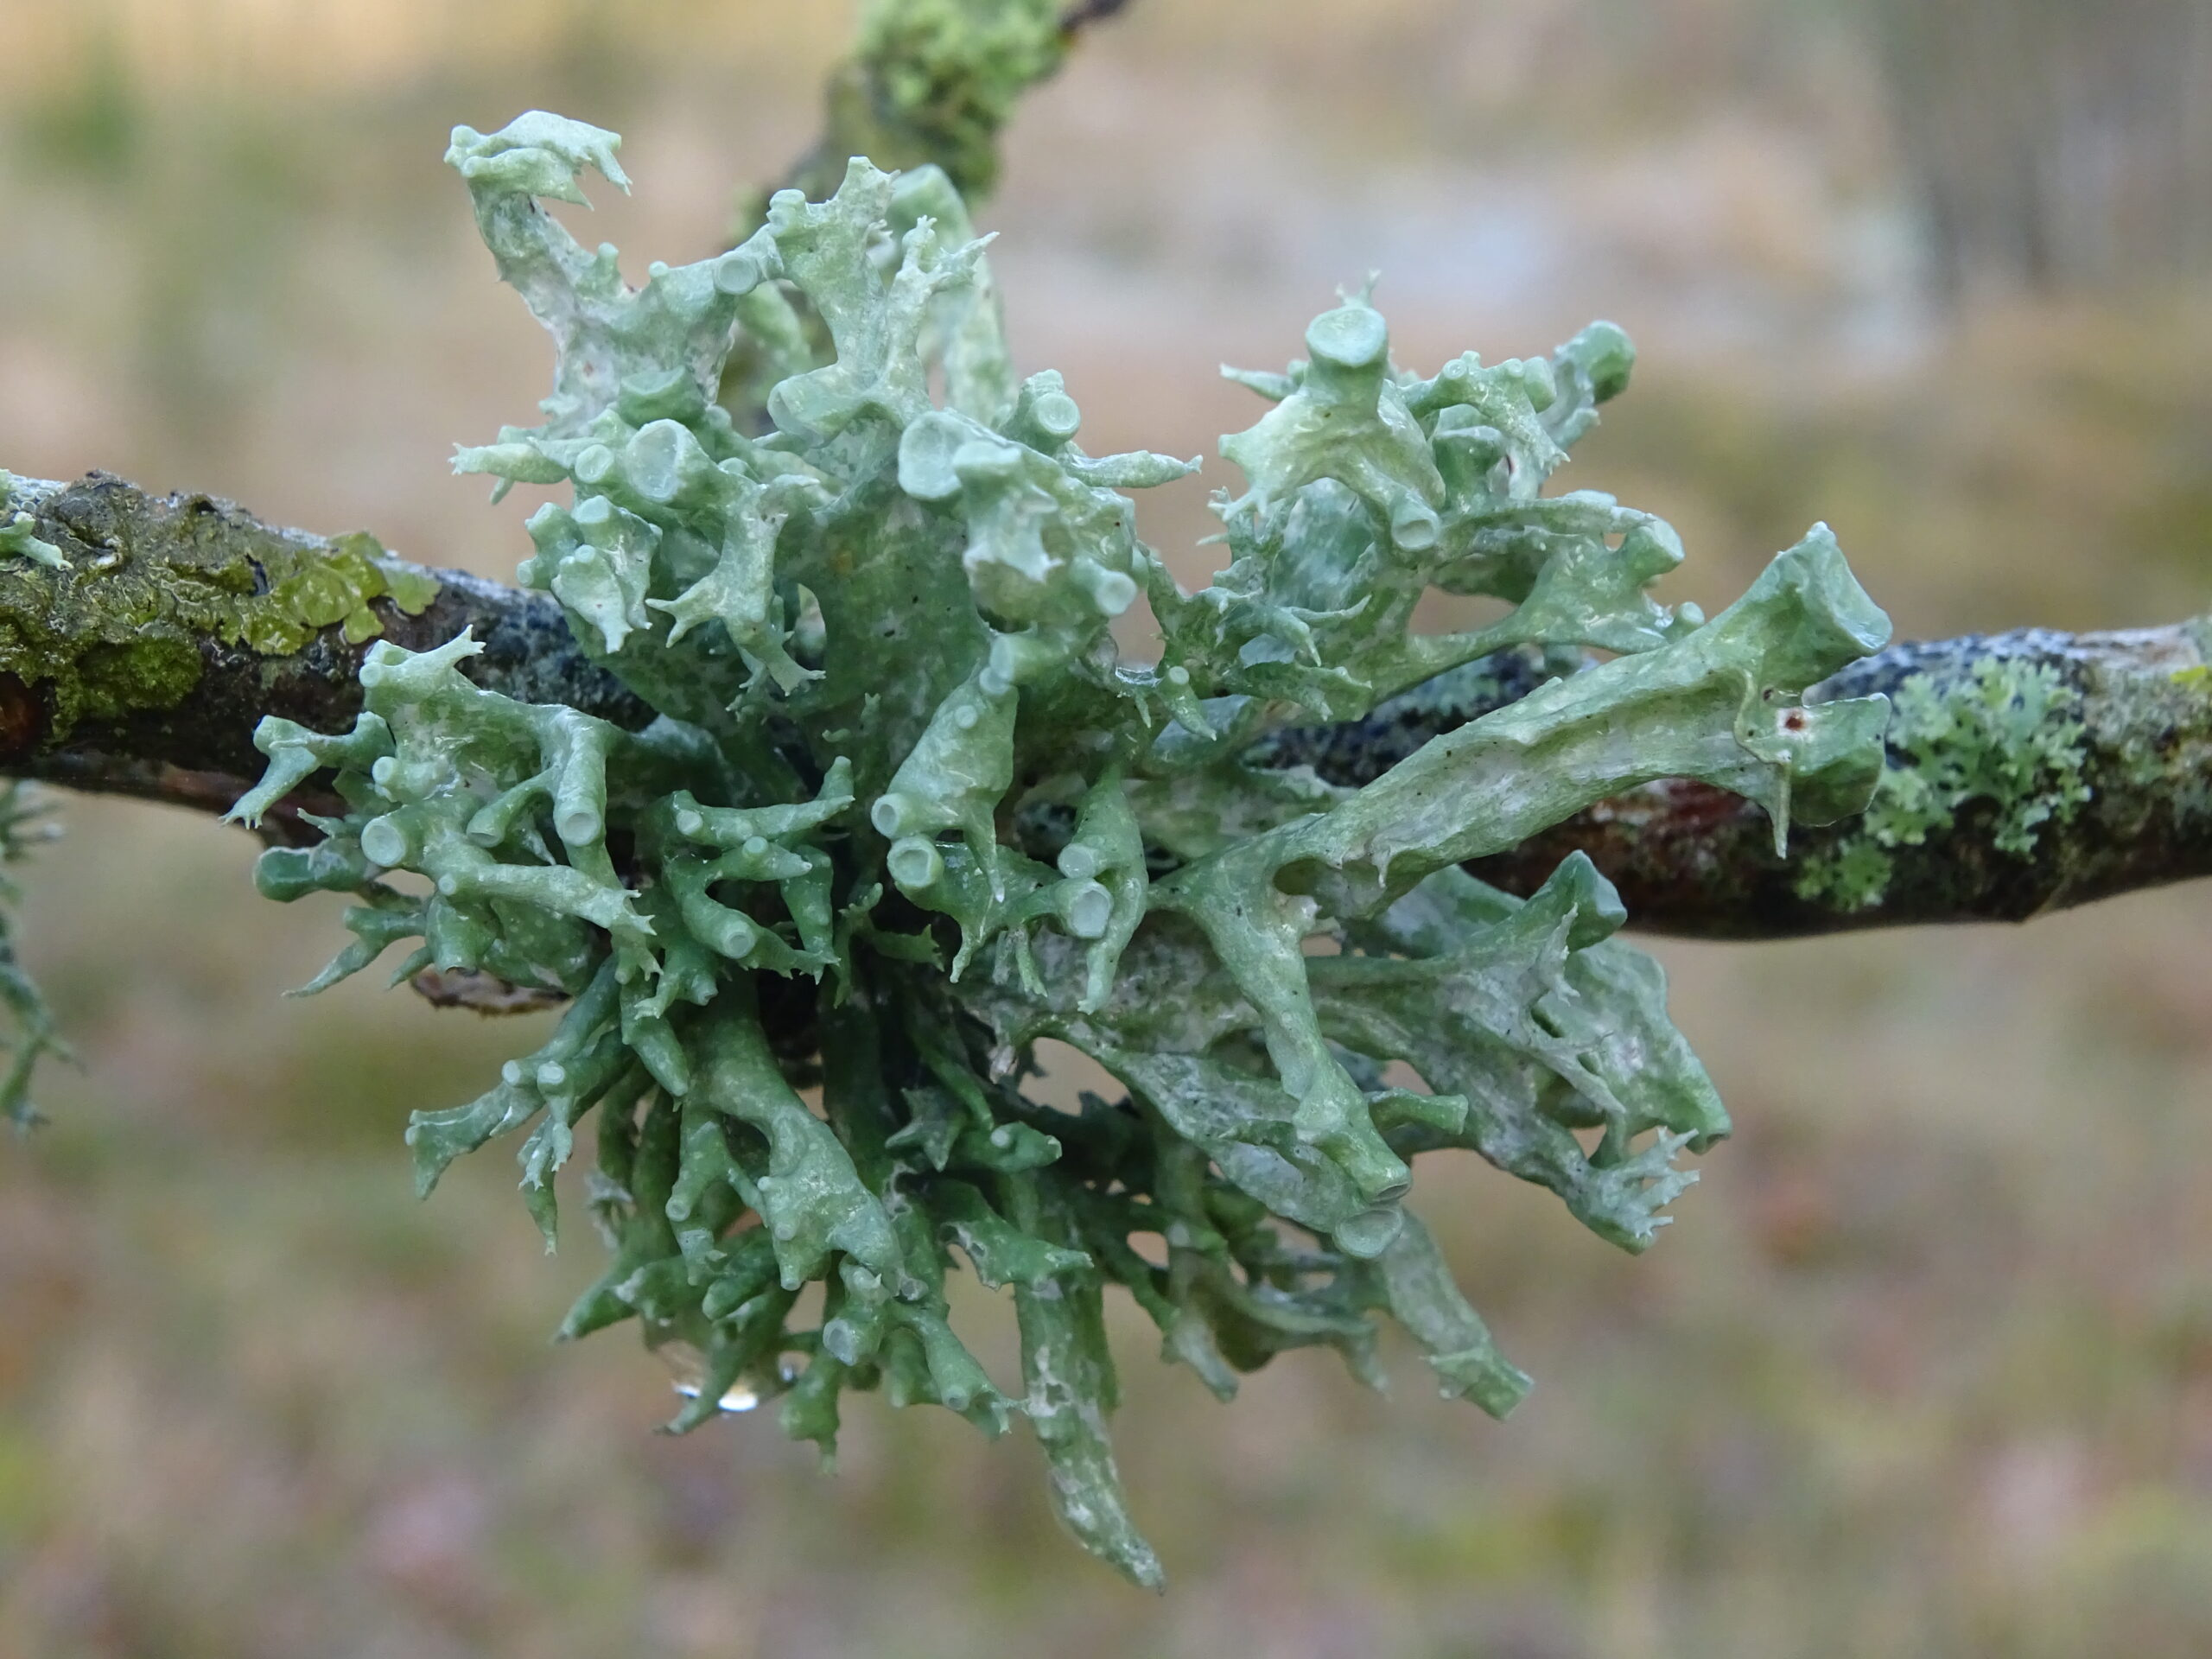 a spiky lichen much larger than the branch it's growing on